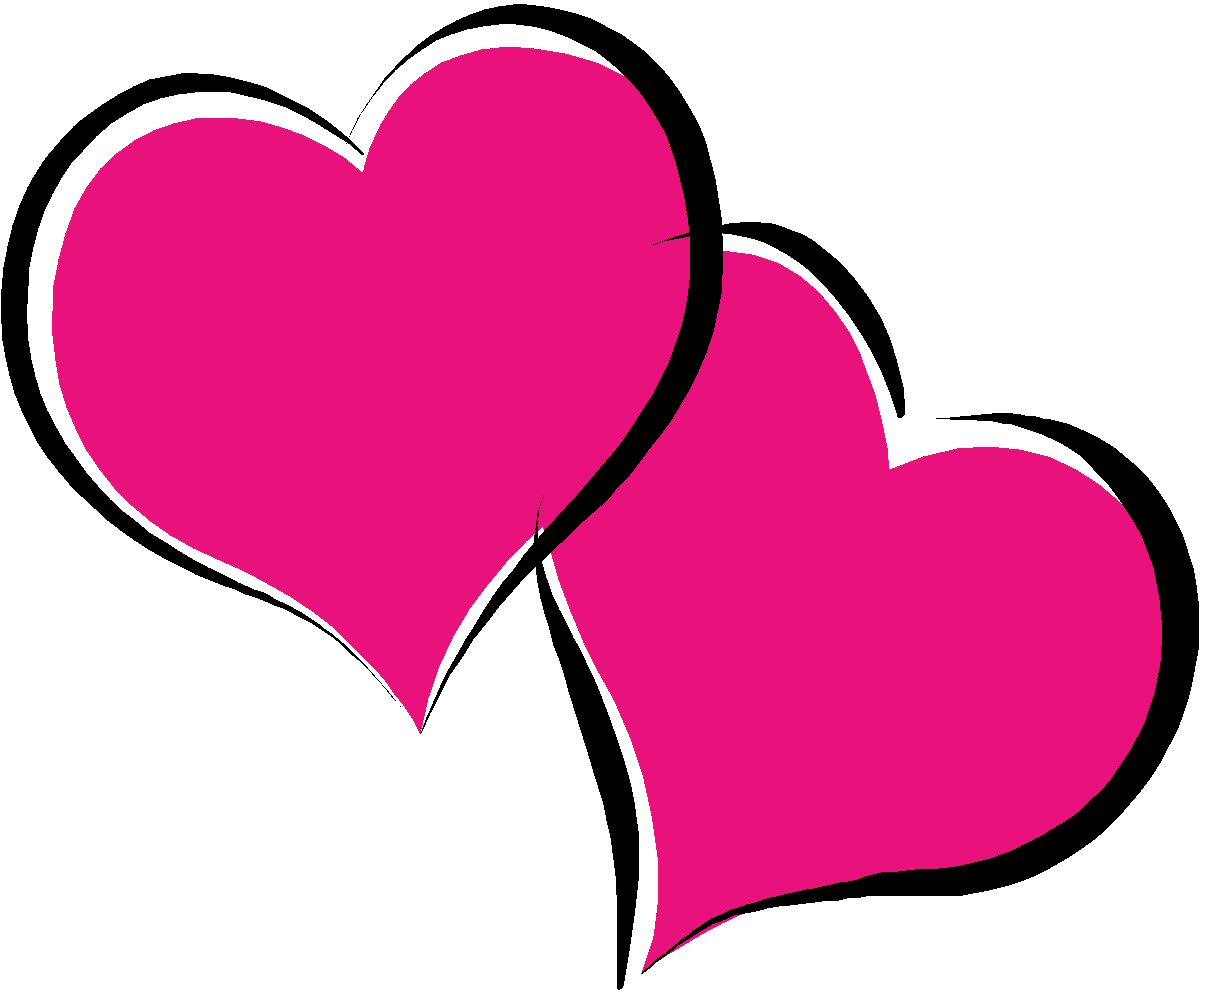 Heart Clip Art Free Download | Clipart Panda - Free Clipart Images